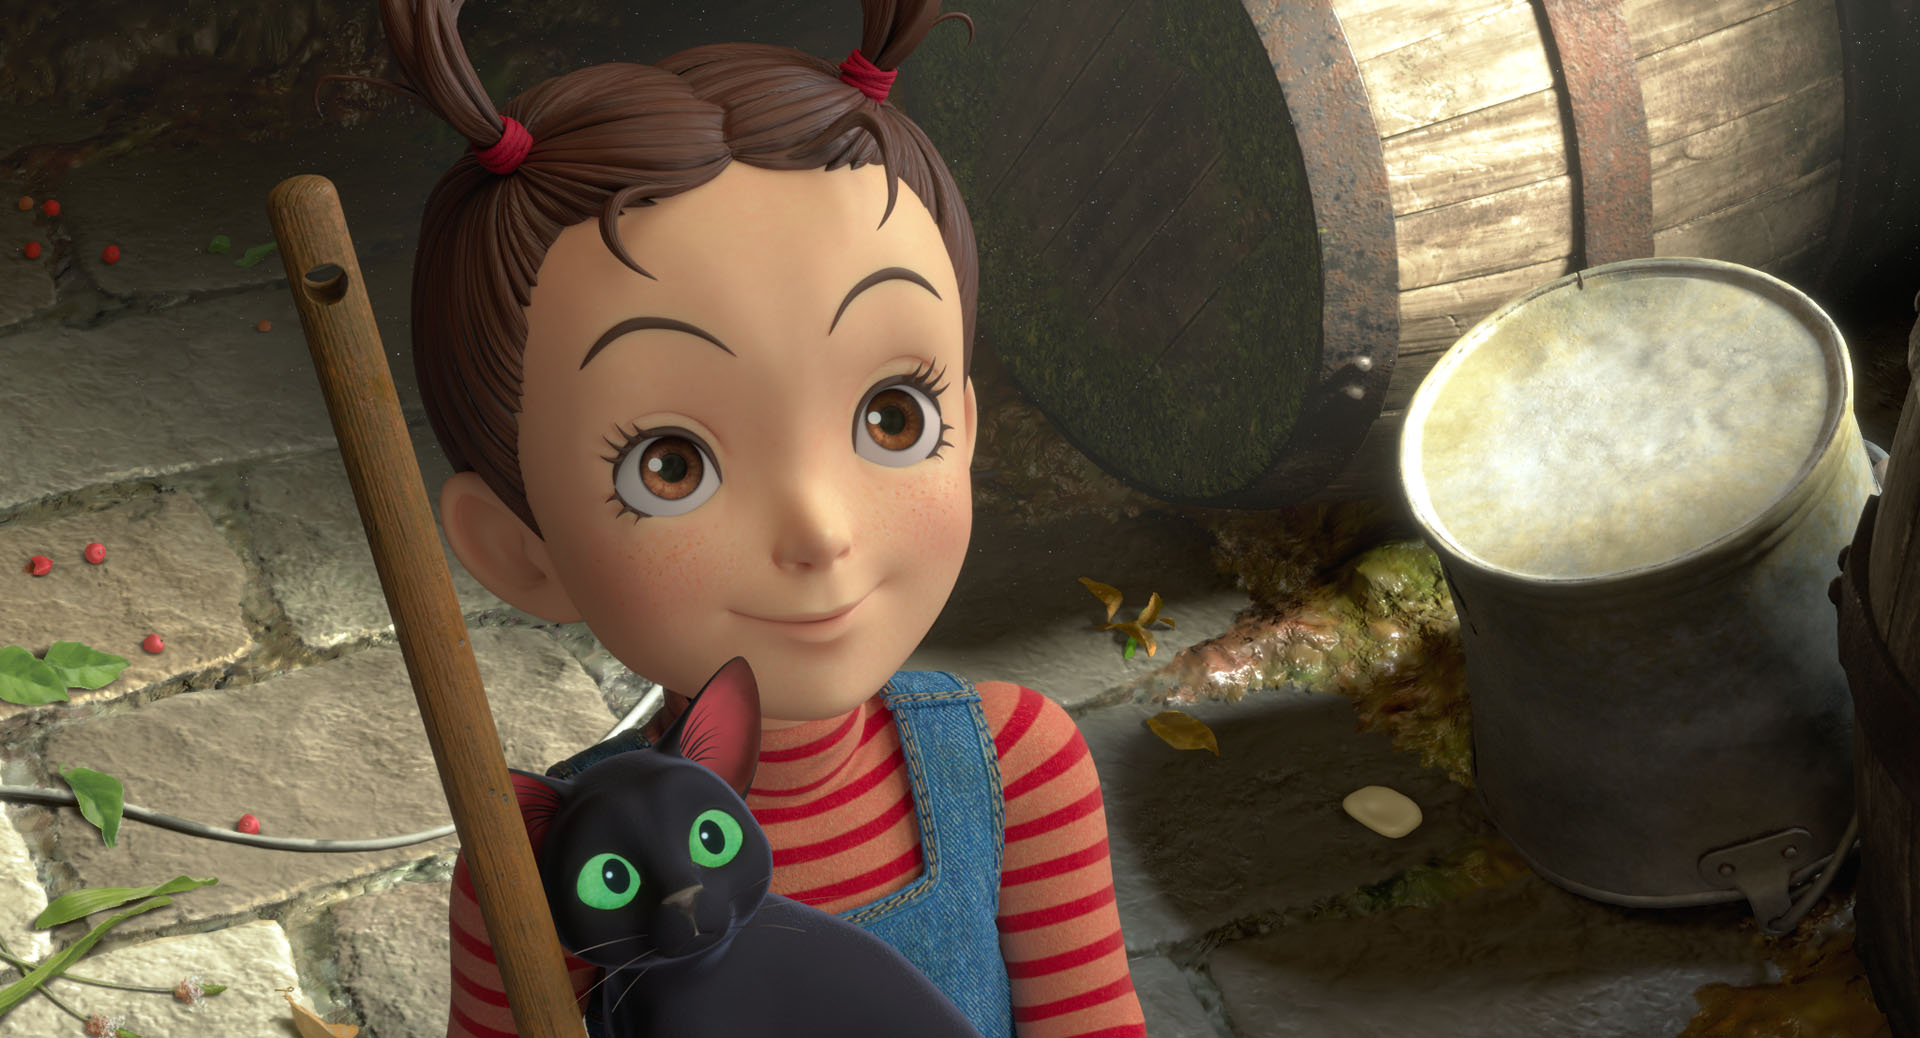 Studio Ghibli's 'Earwig And The Witch' Coming To Netflix